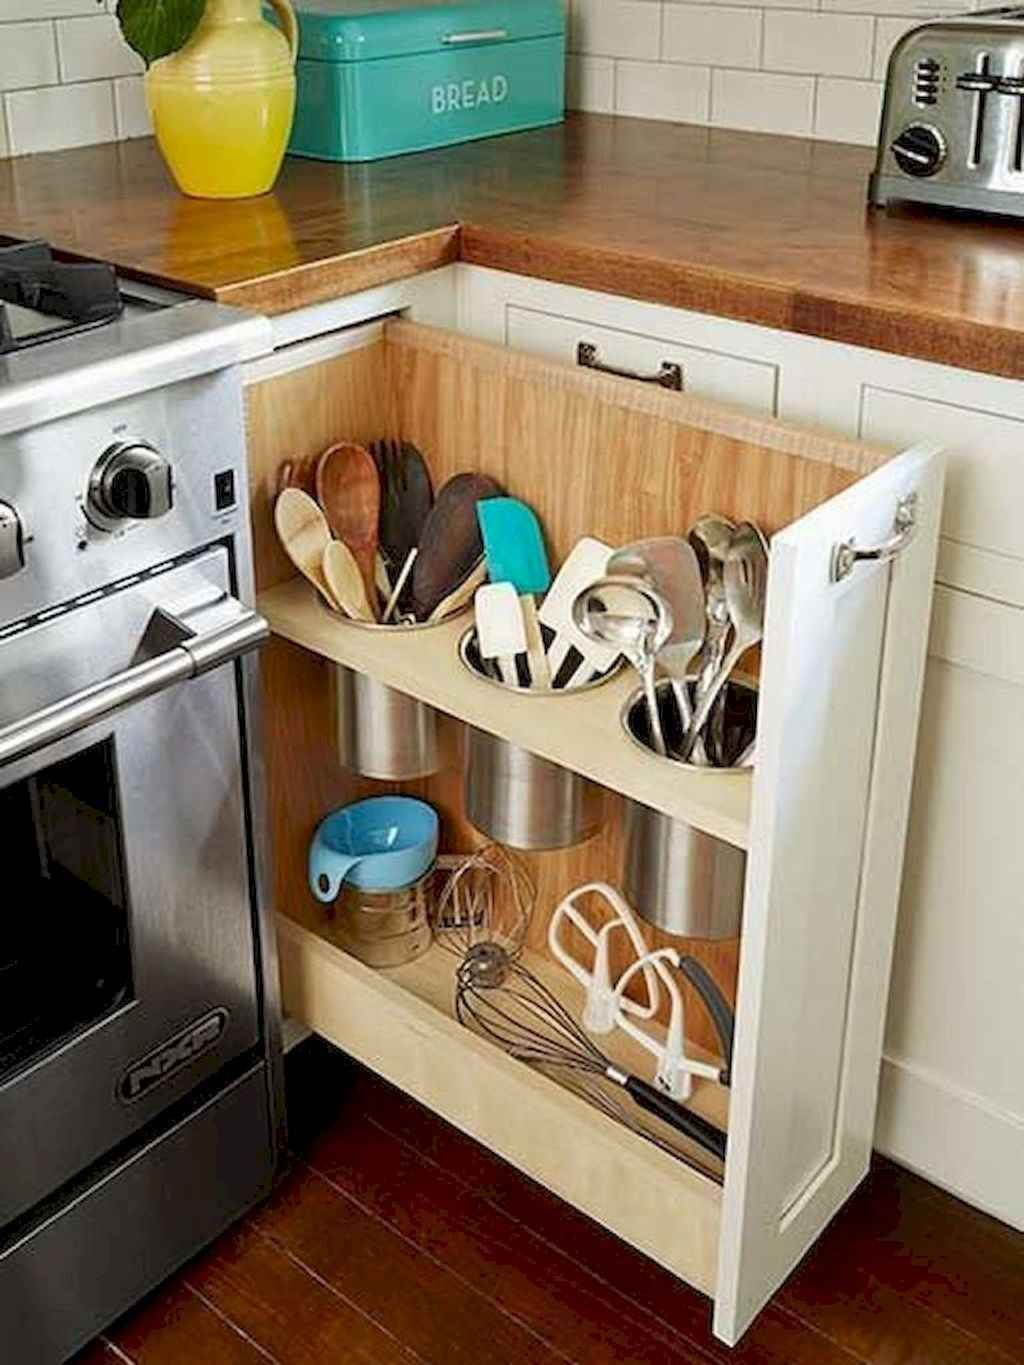 35 Smart Small Kitchen Organization and Tips Ideas - homixover.com #smallkitchenorganization